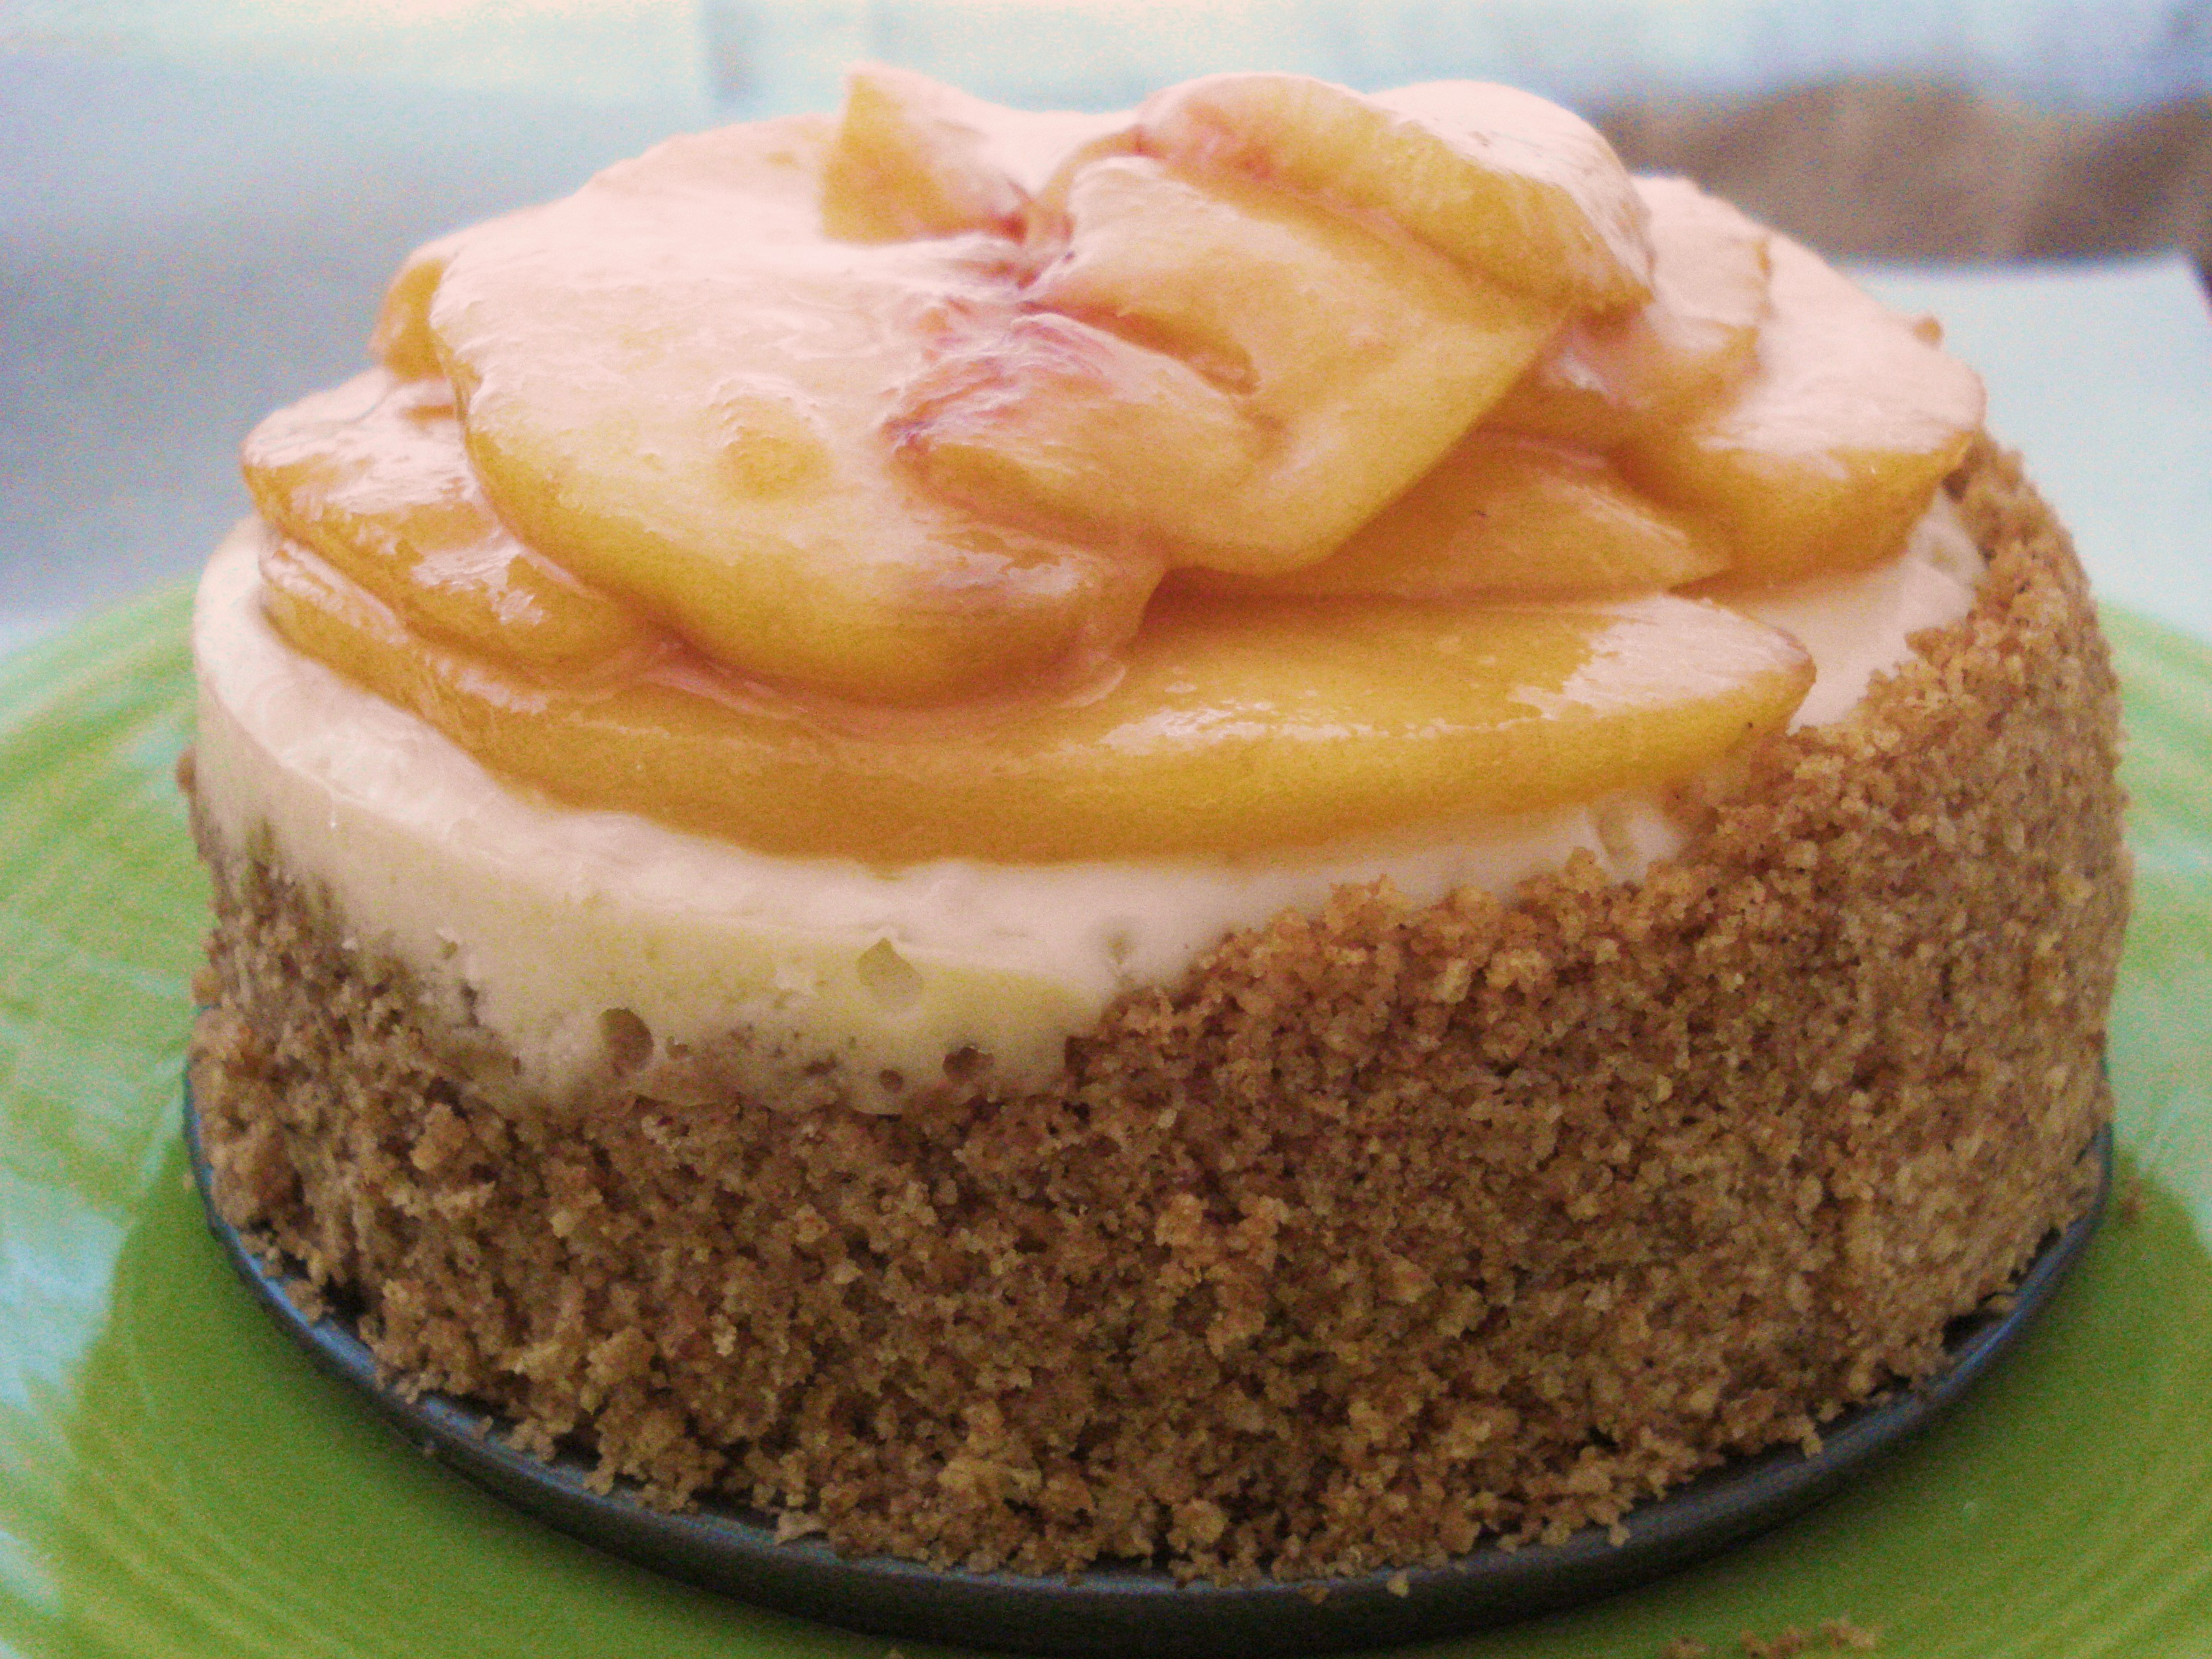 Cheesecake with Honeyed Peaches Dessert for Two